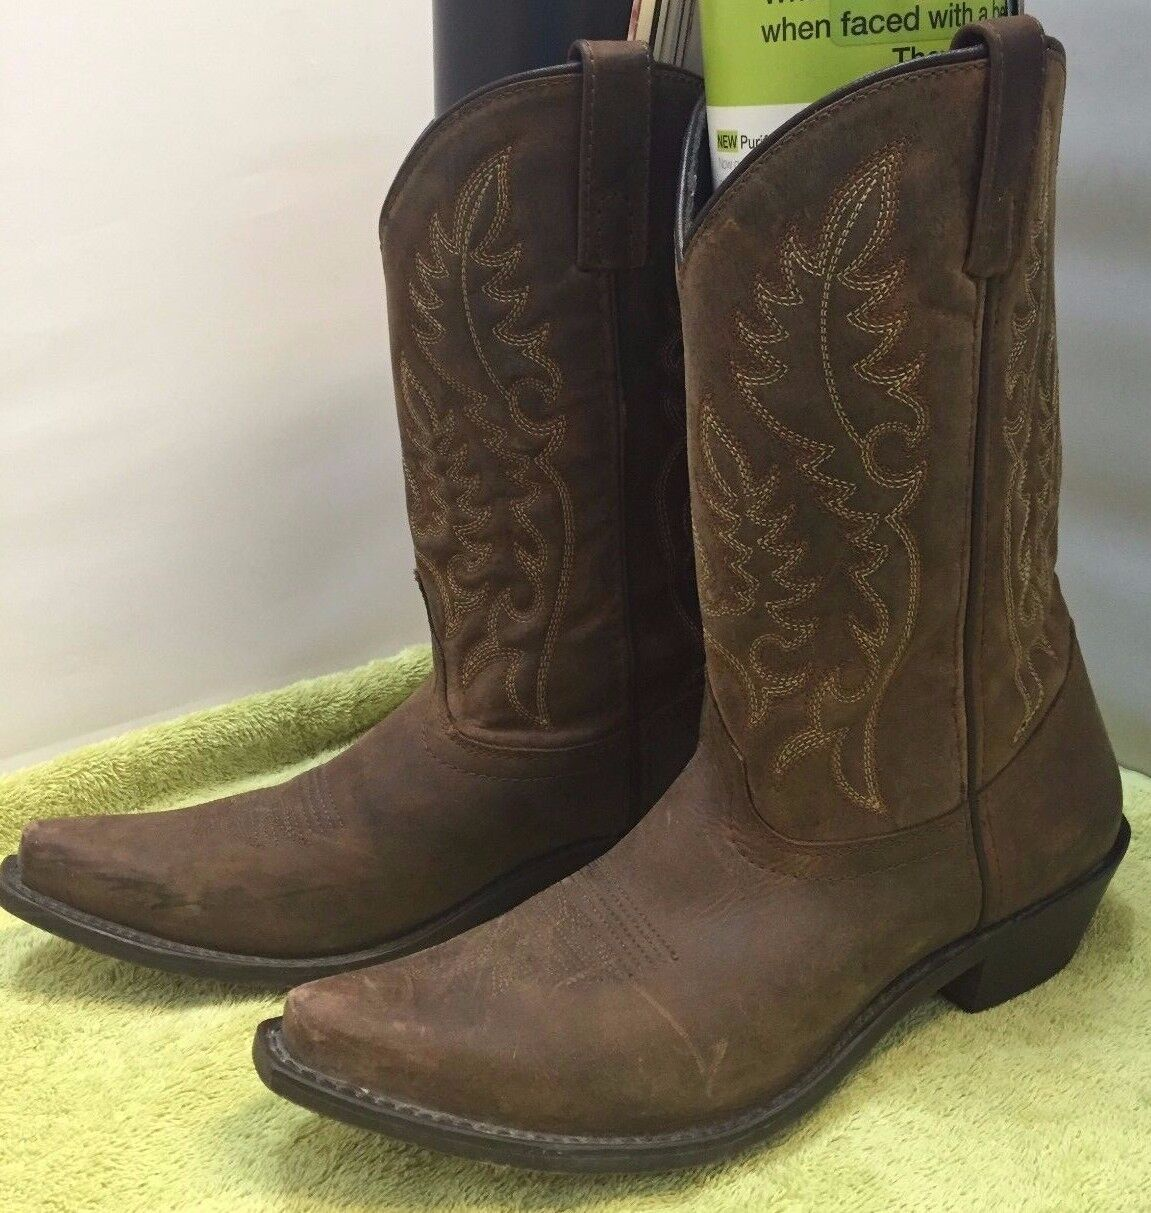 WOMEN 7.5 LAROTO PROVIDENCE LEATHER WESTERN COWBOY BOOTS BROWN MID CALF 51094